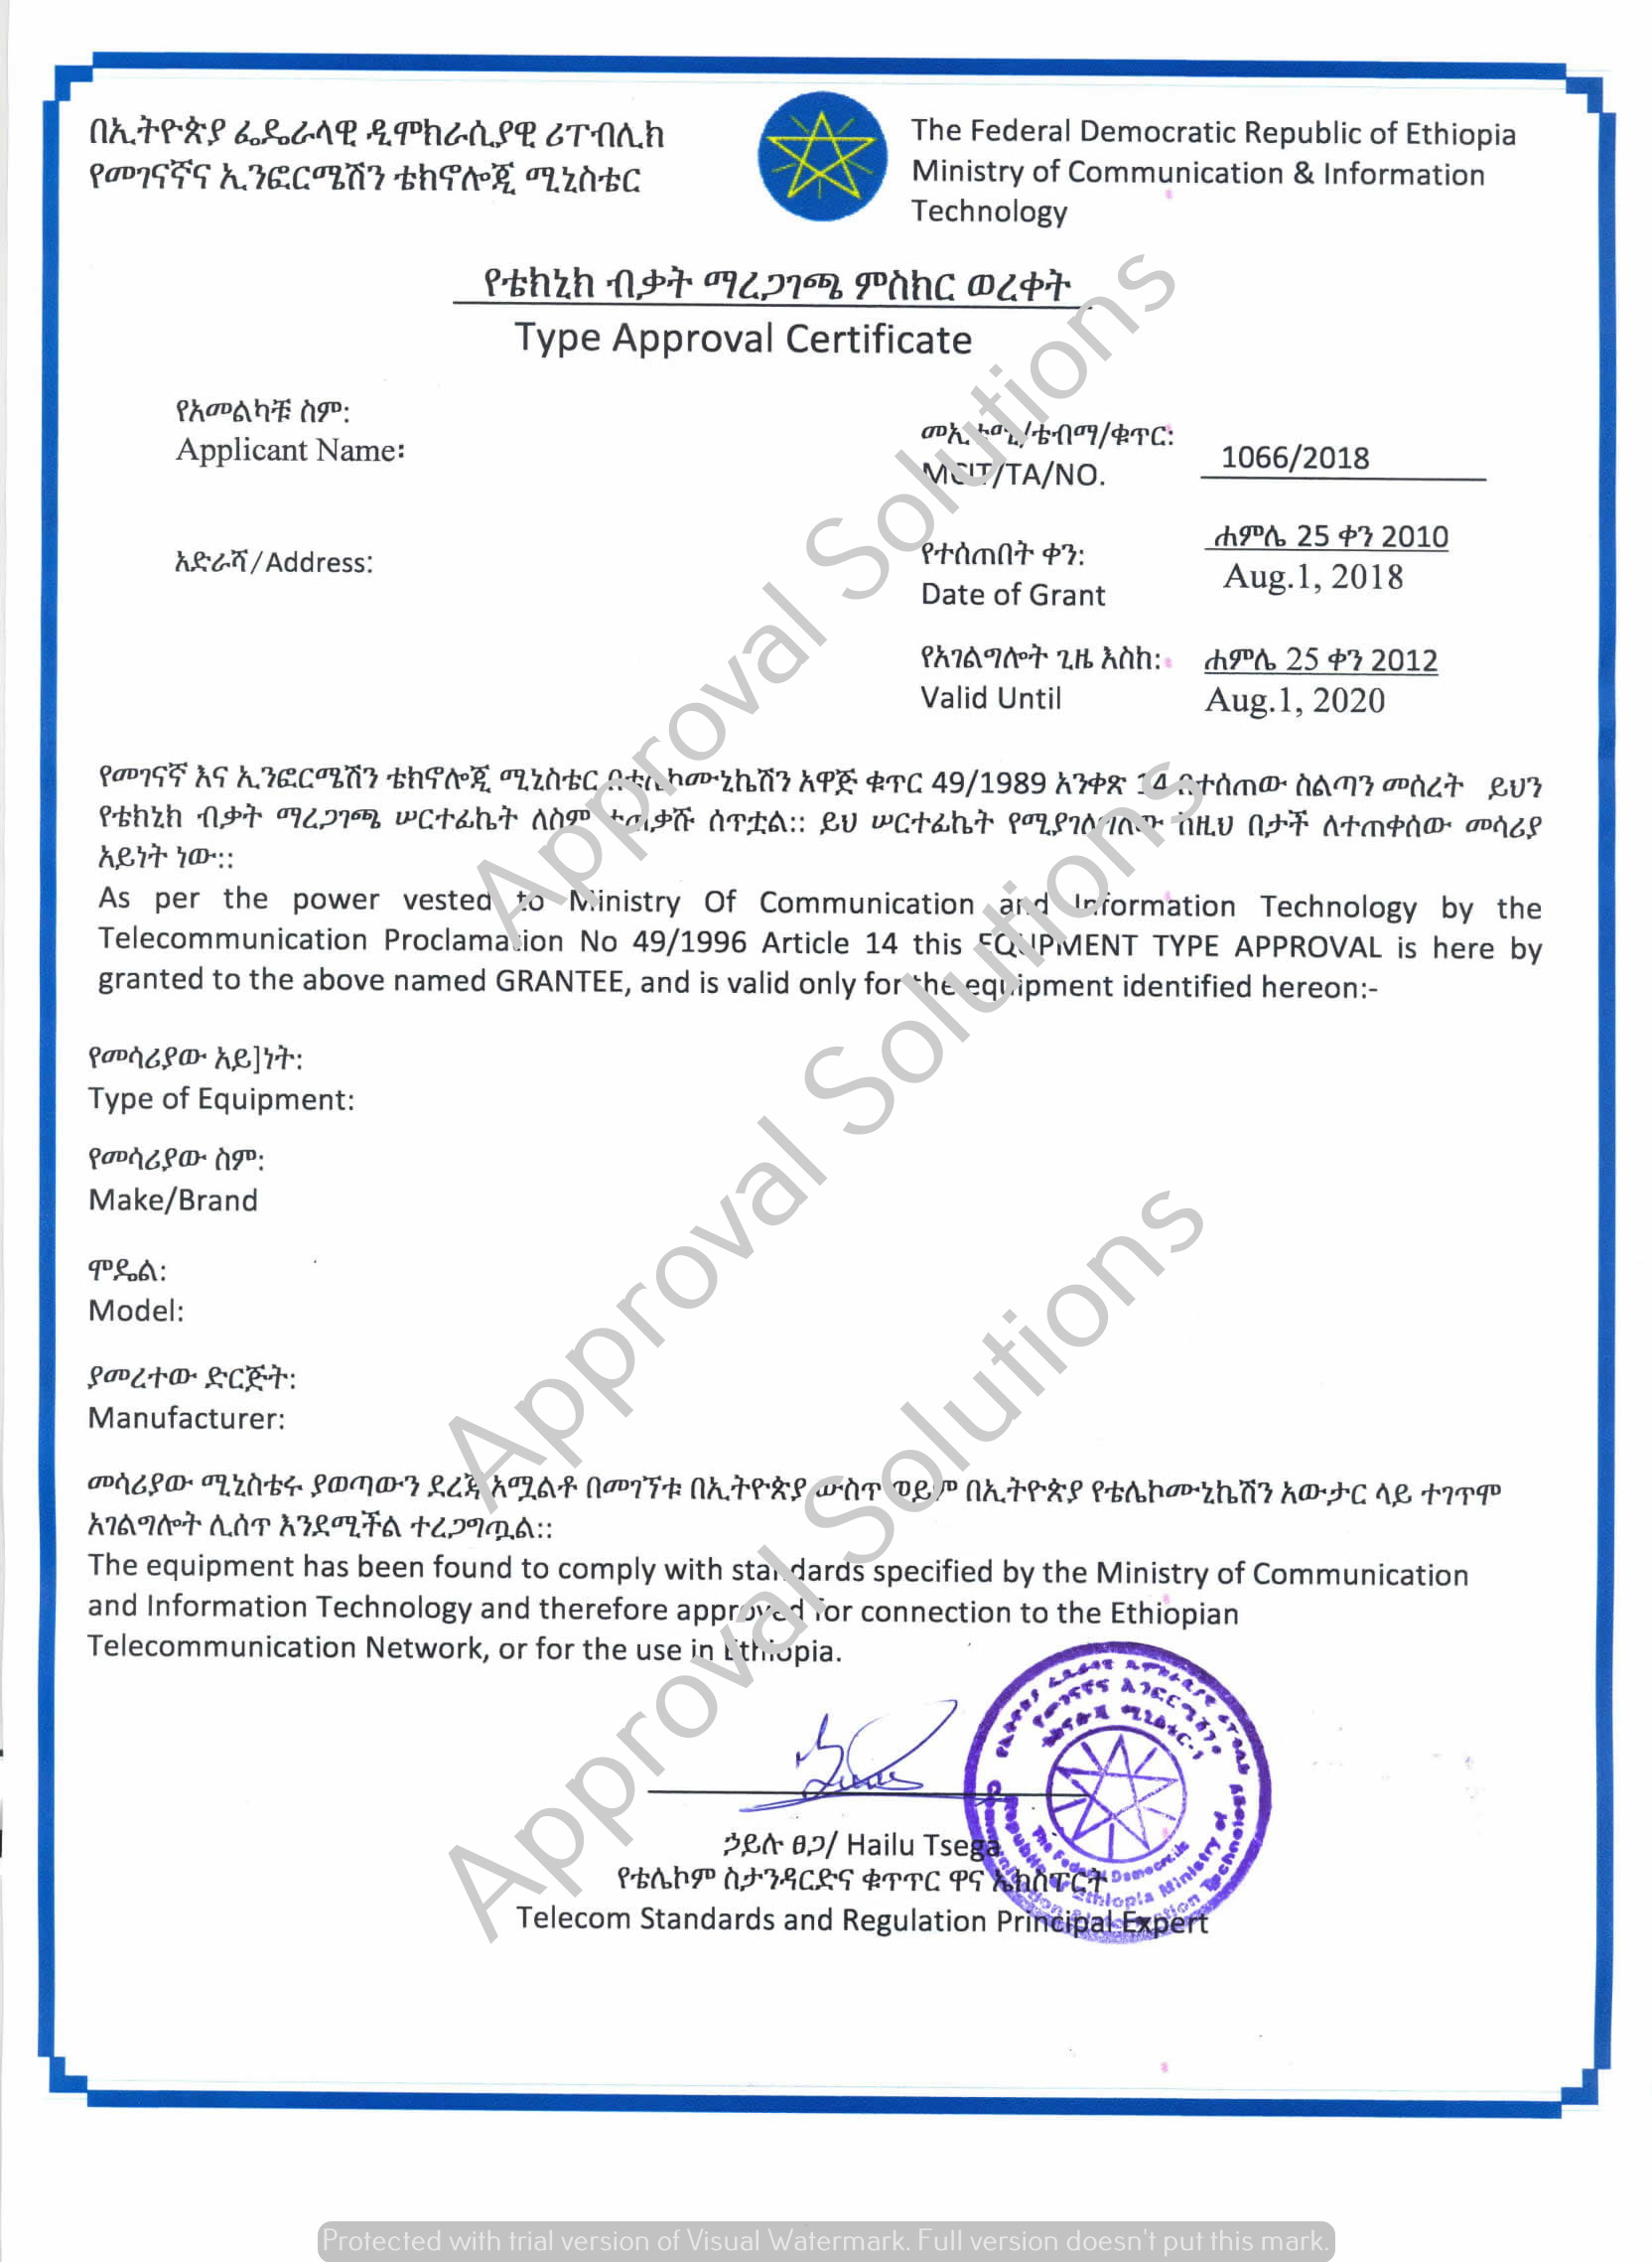 Approval Solutions | Type Approval and Certification Services